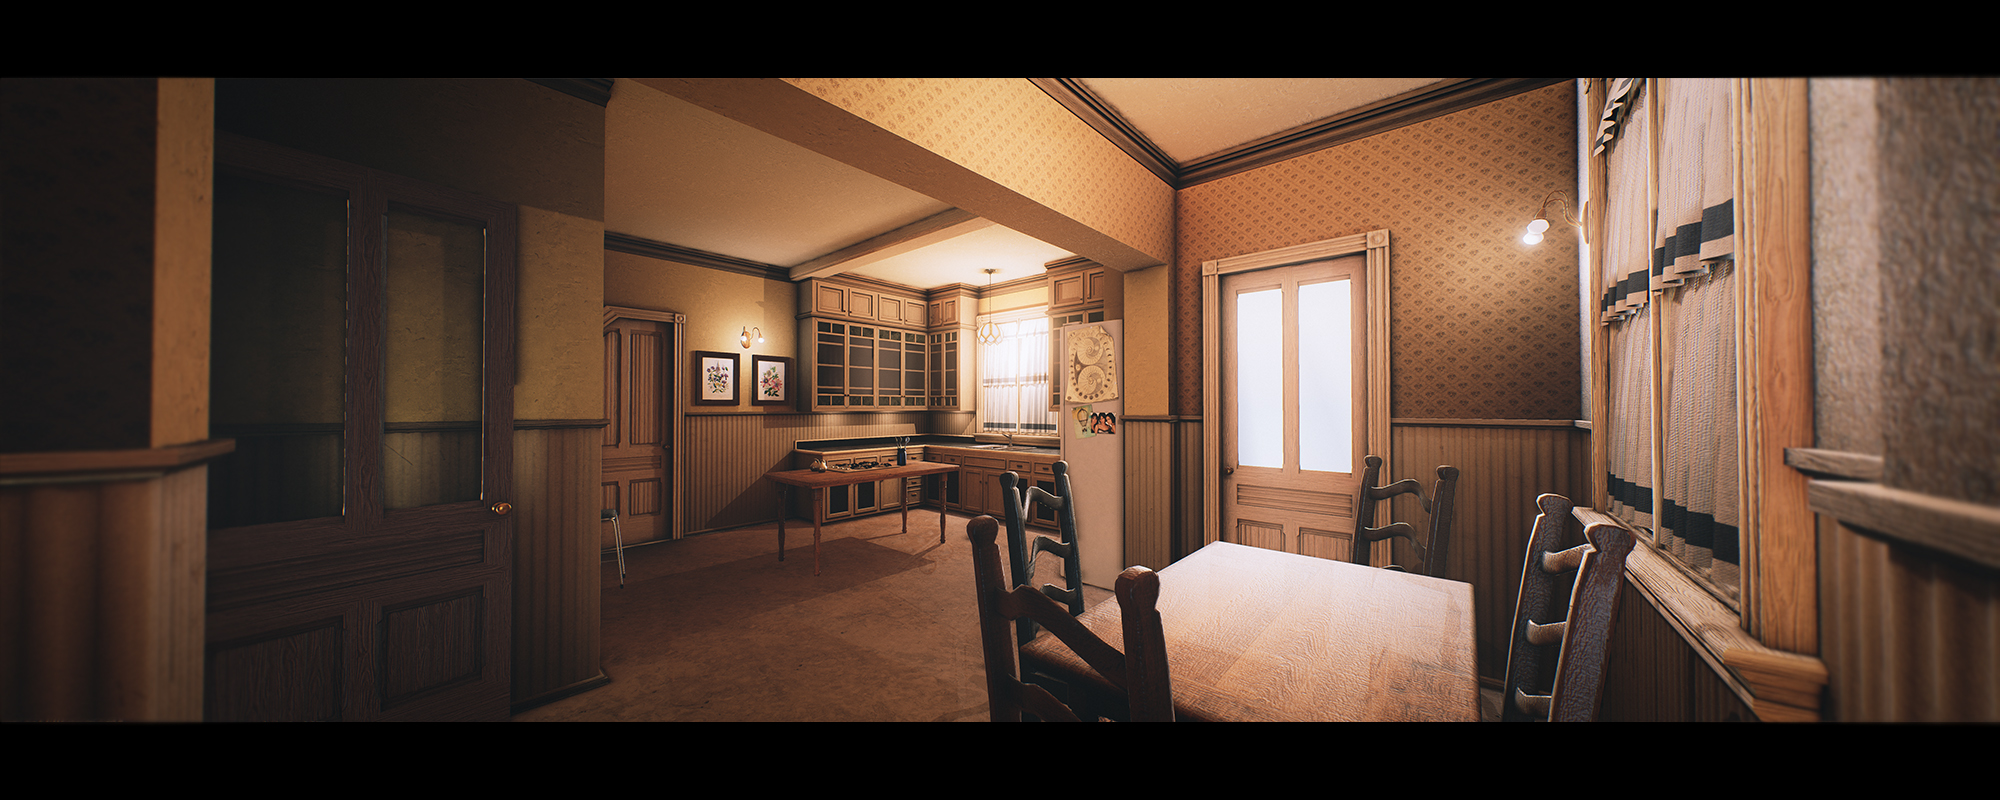 Charmed house halliwell manor polycount for Charmed house floor plan